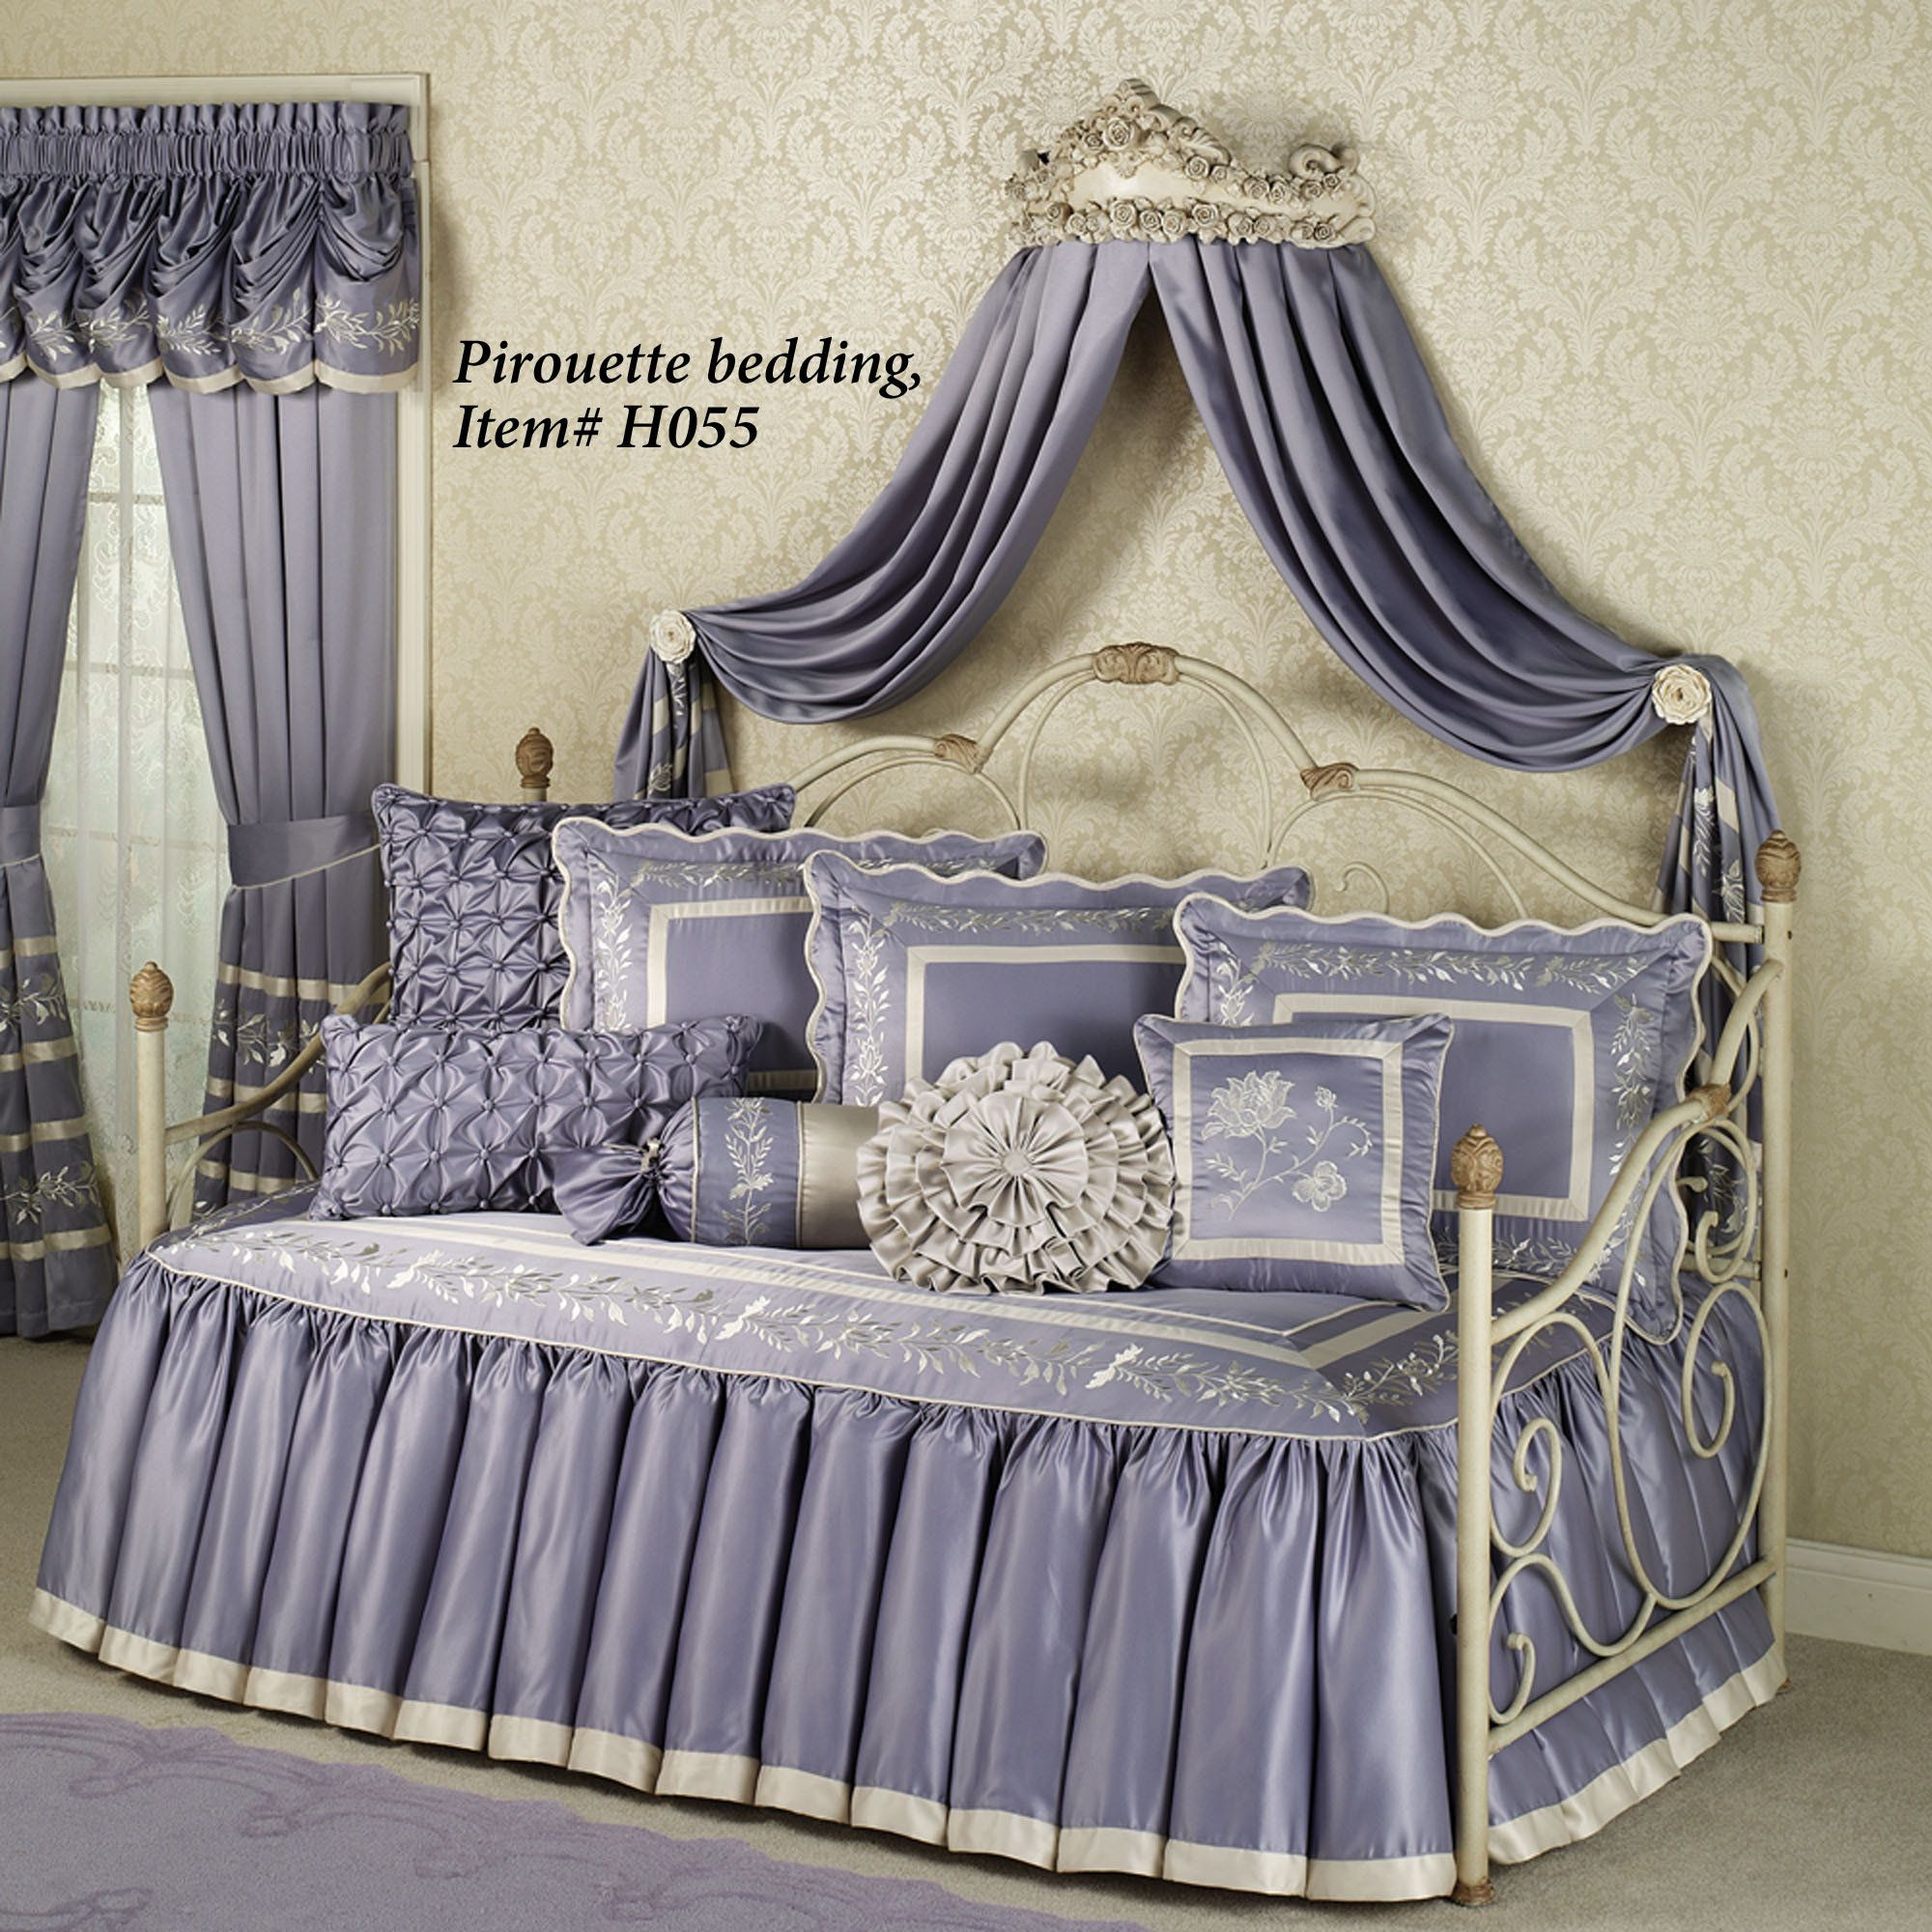 Victoria Rose Antique Ivory Wall Teester Bed Crown | Bed ... on Wall Teester Bed Crown  id=38947